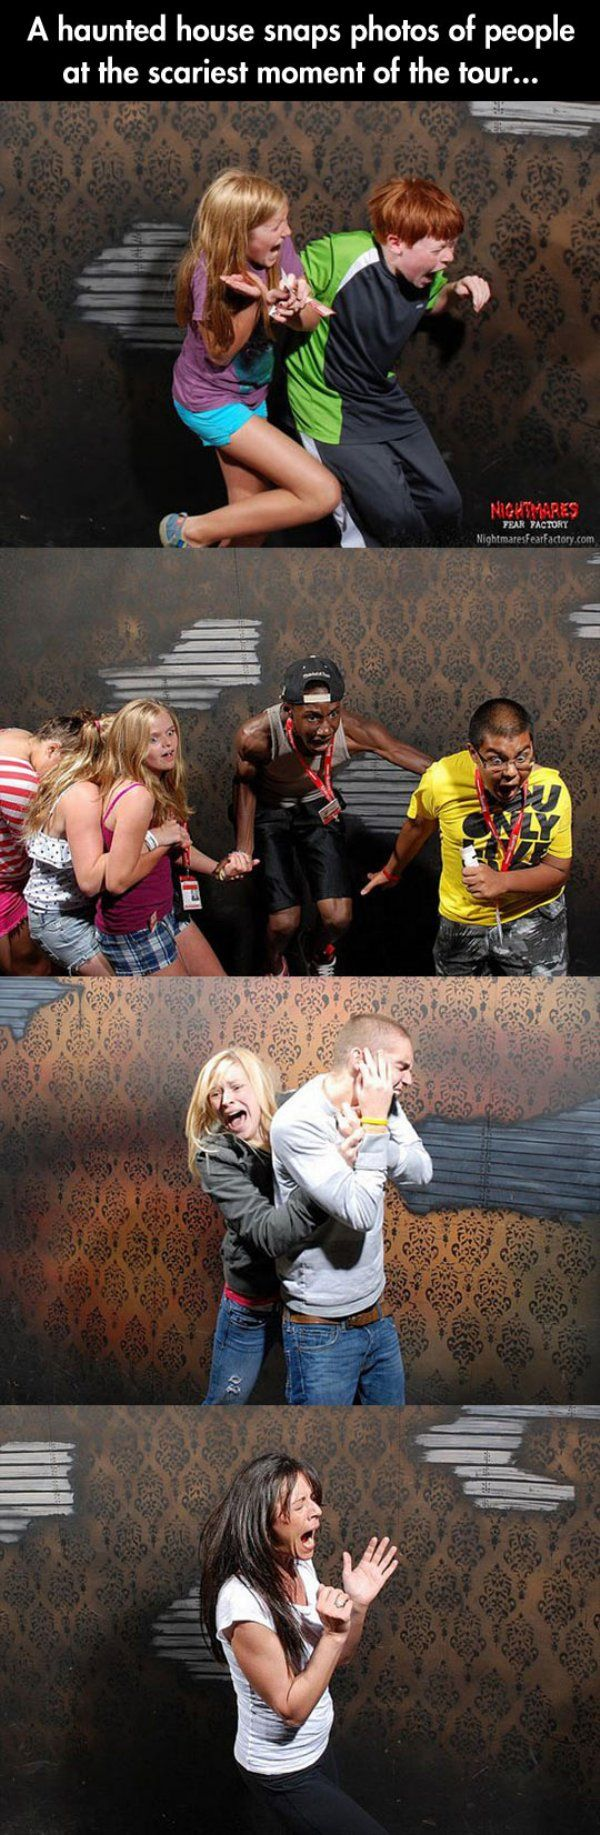 50 hilariously ridiculous haunted house reactions - A Haunted House Snaps Photos Of People At The Scariest Moment Of The Tour Some Of The Faces Are Priceless Hahahahaha